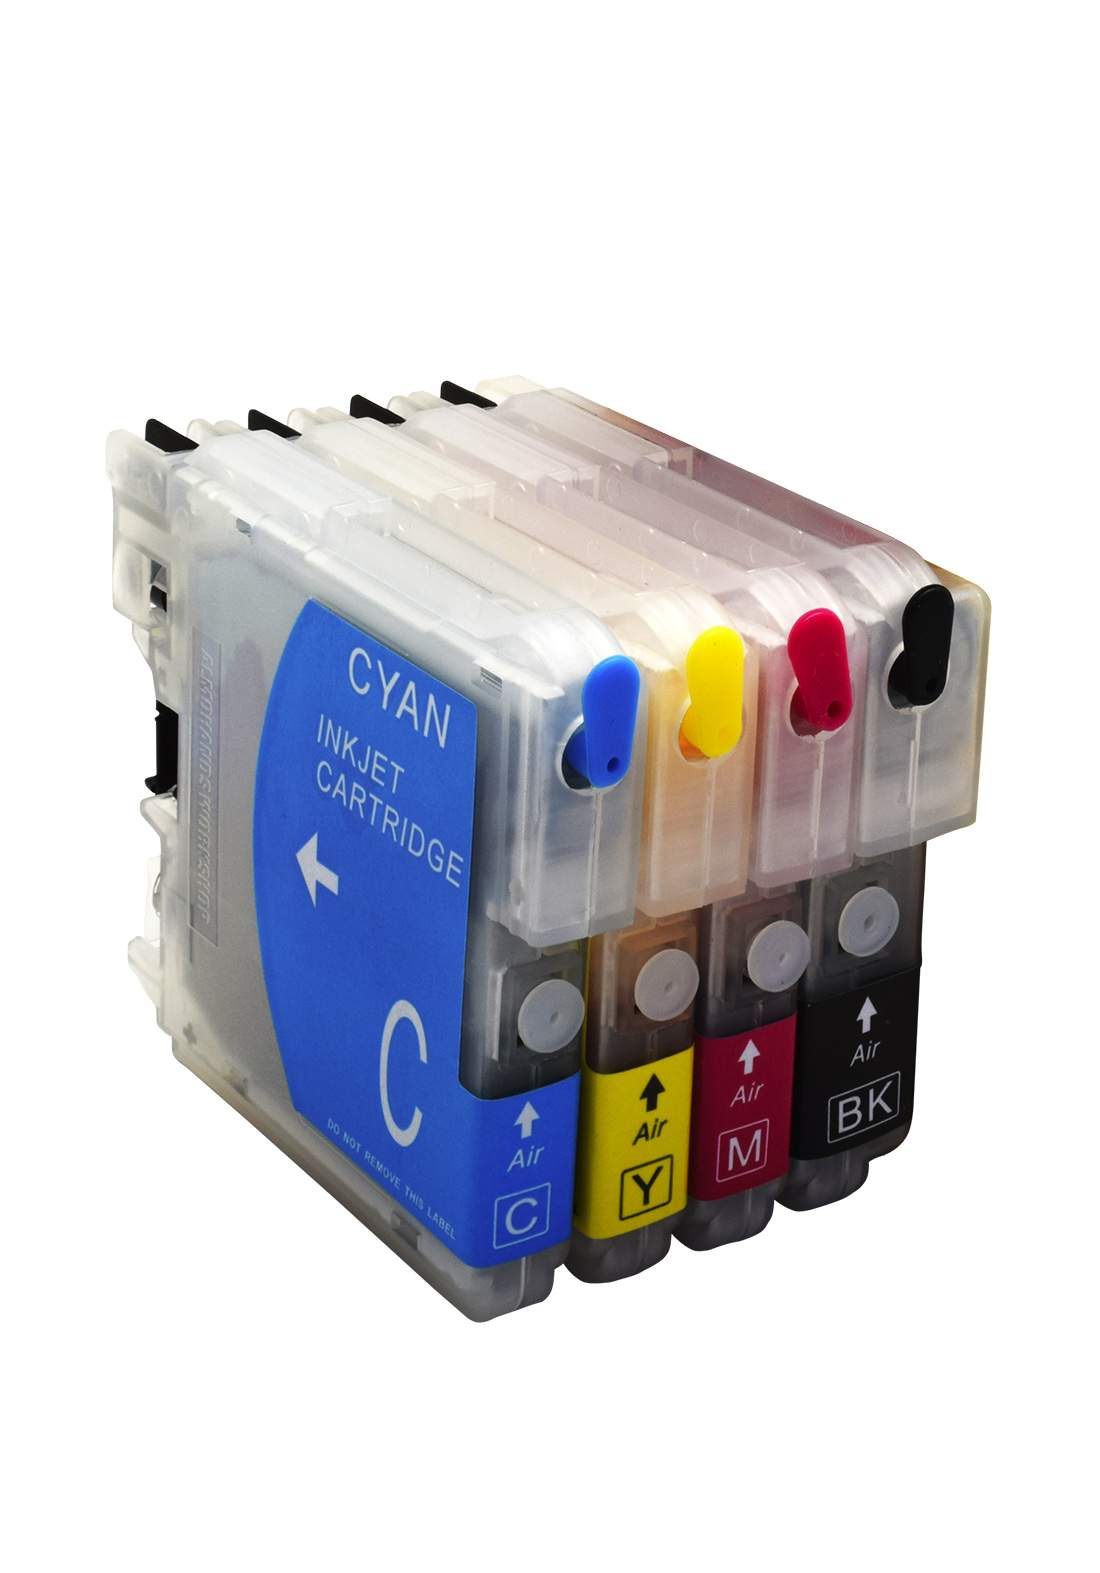 Ink Ciss System Brother Ctg  LC38/LC39/LC11/LC16/LC38/LC61/LC67/LC980/LC1100/LC39/LC985 Generic  خرطوشة حبر